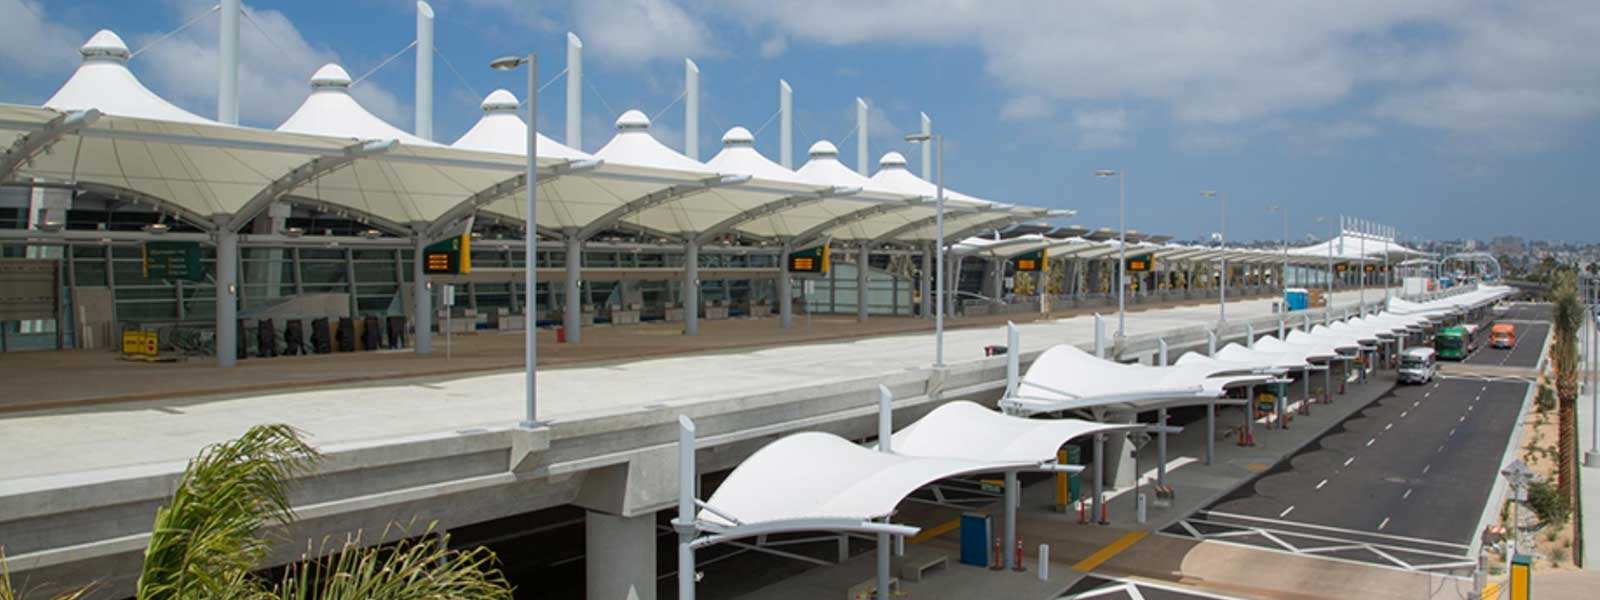 Tensile Structure Manufacturers in Sikkim